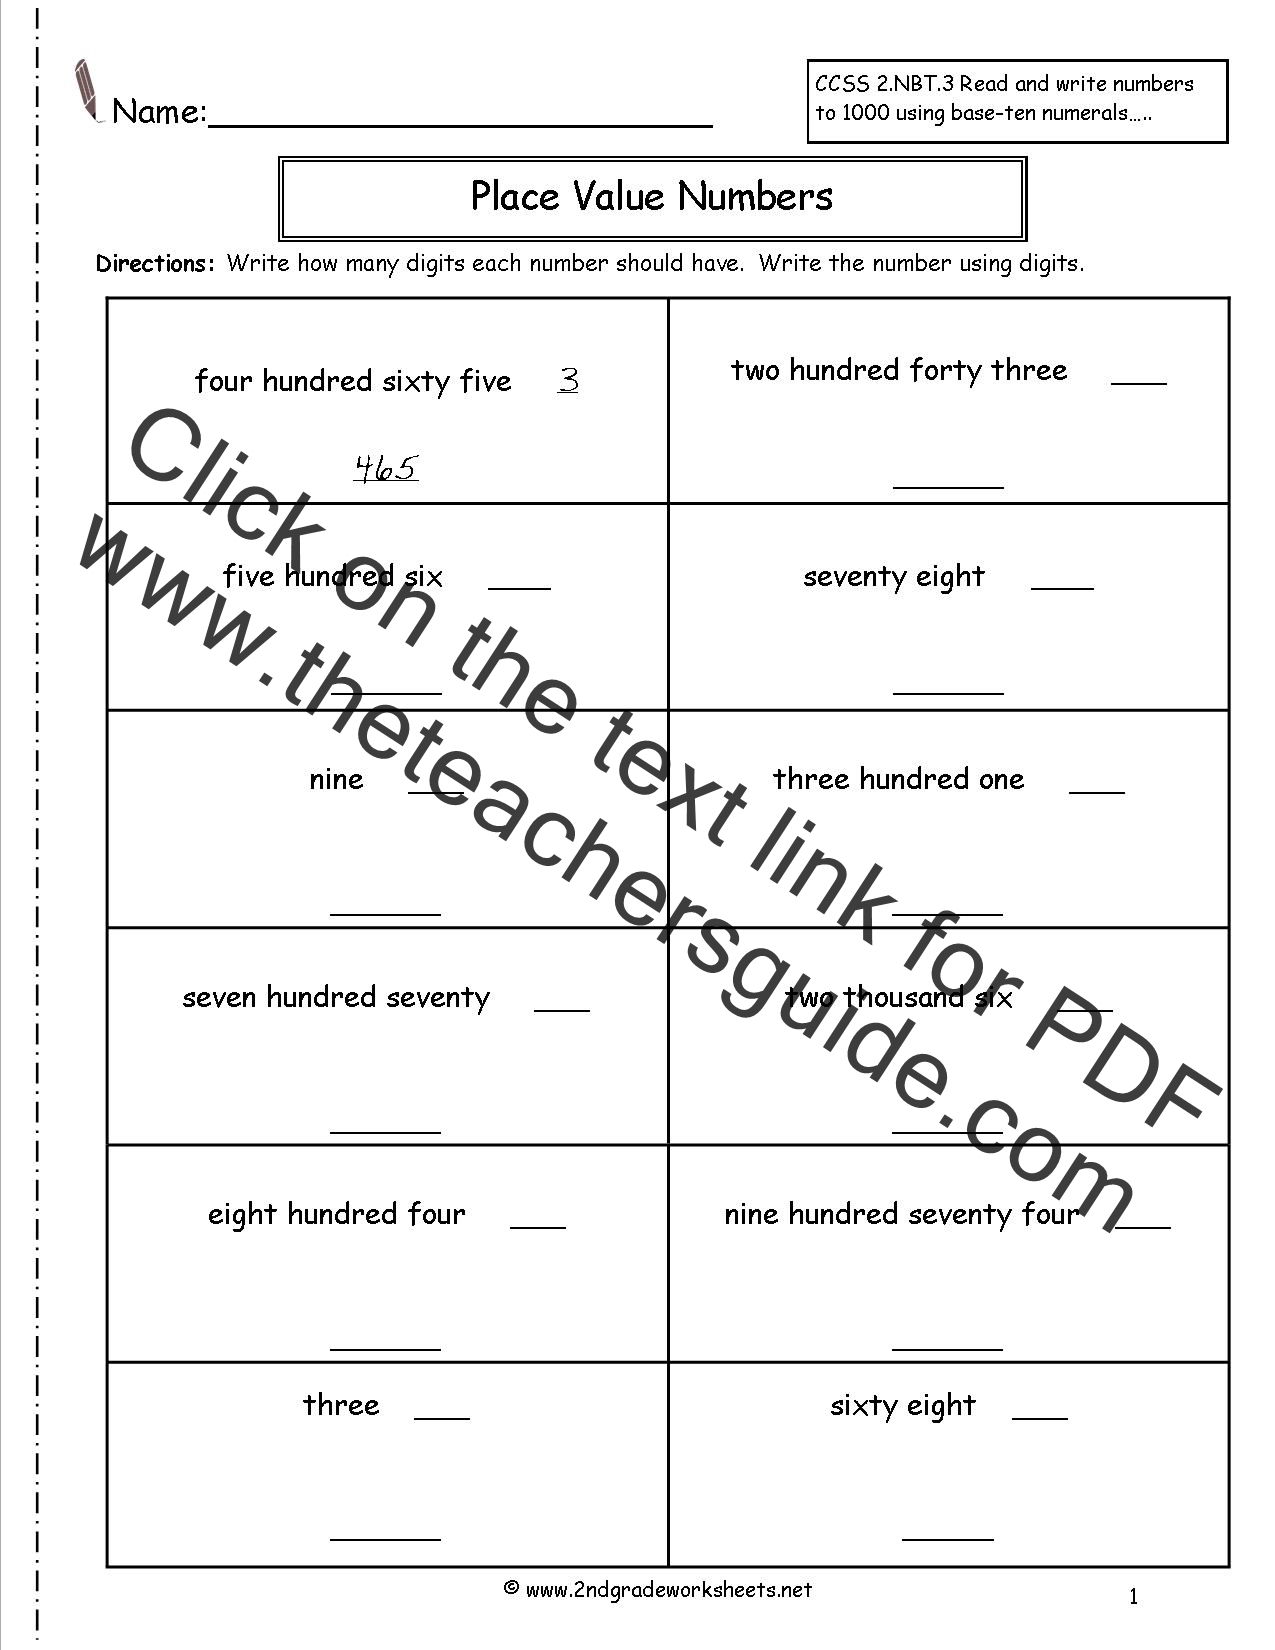 worksheet Base Ten Worksheet second grade place value worksheets worksheet